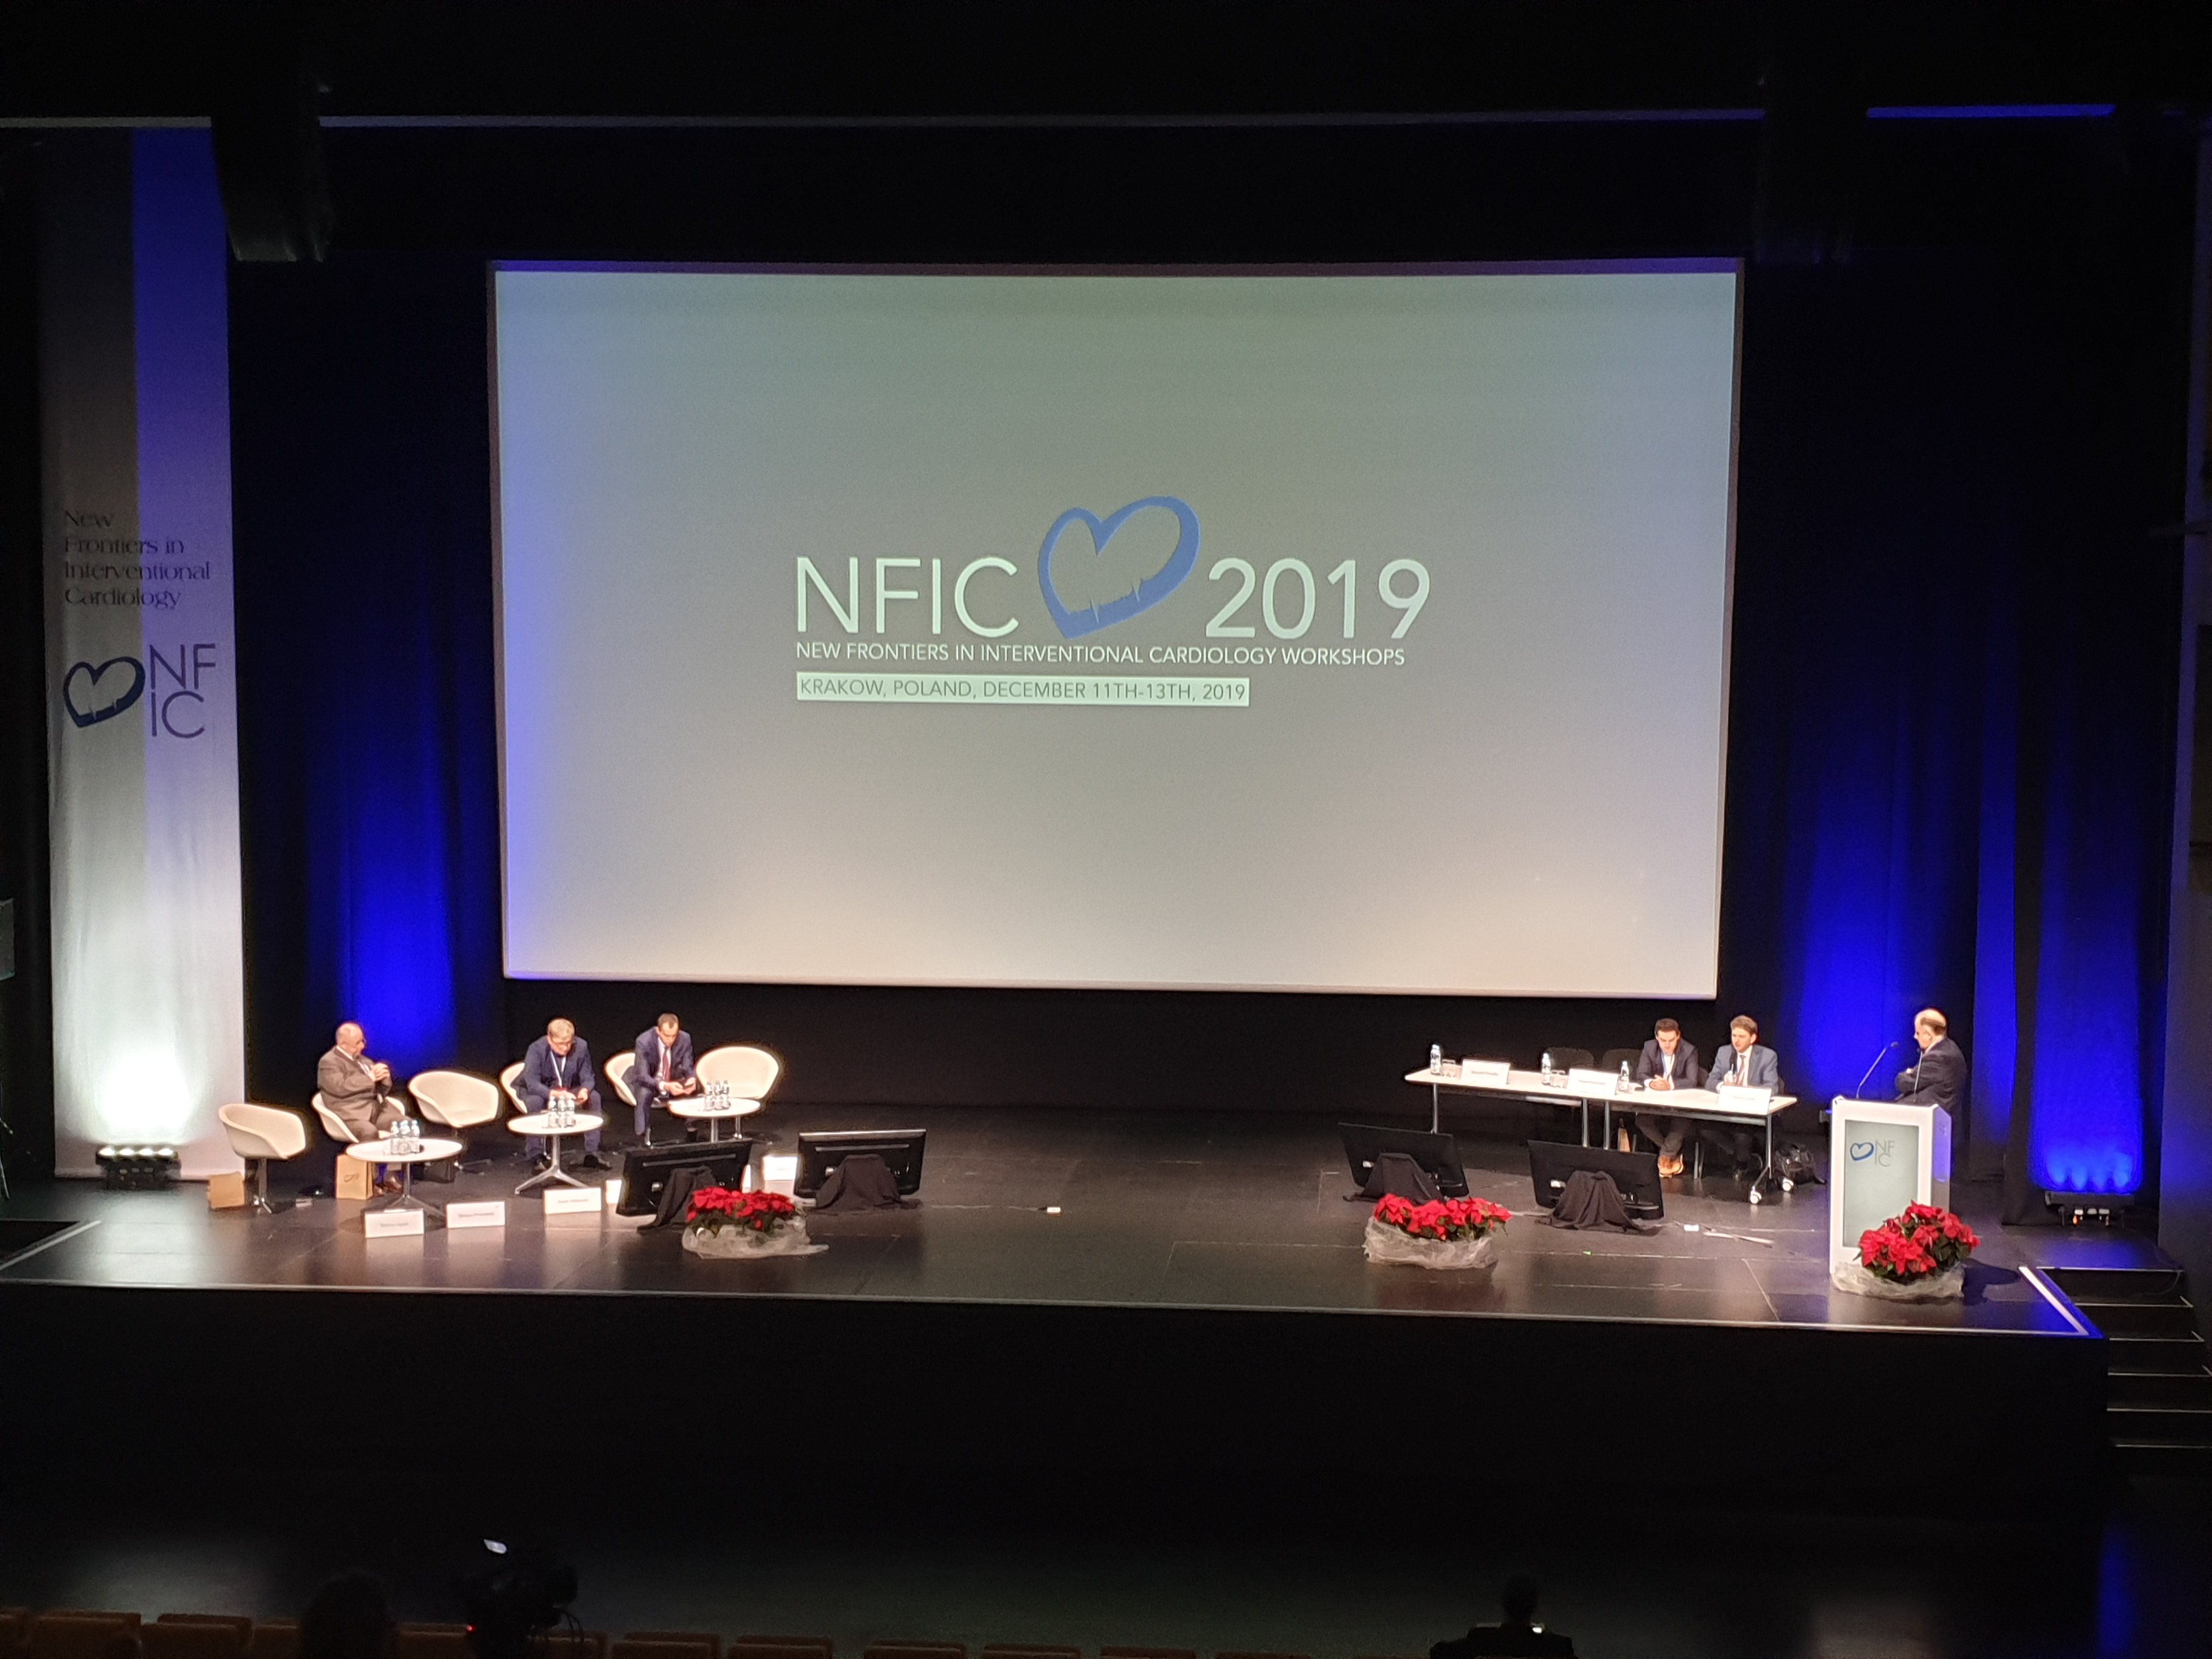 20 th Interventional Cardiology Workshop – New Frontiers in Interventional Cardiology (NFIC 2019)